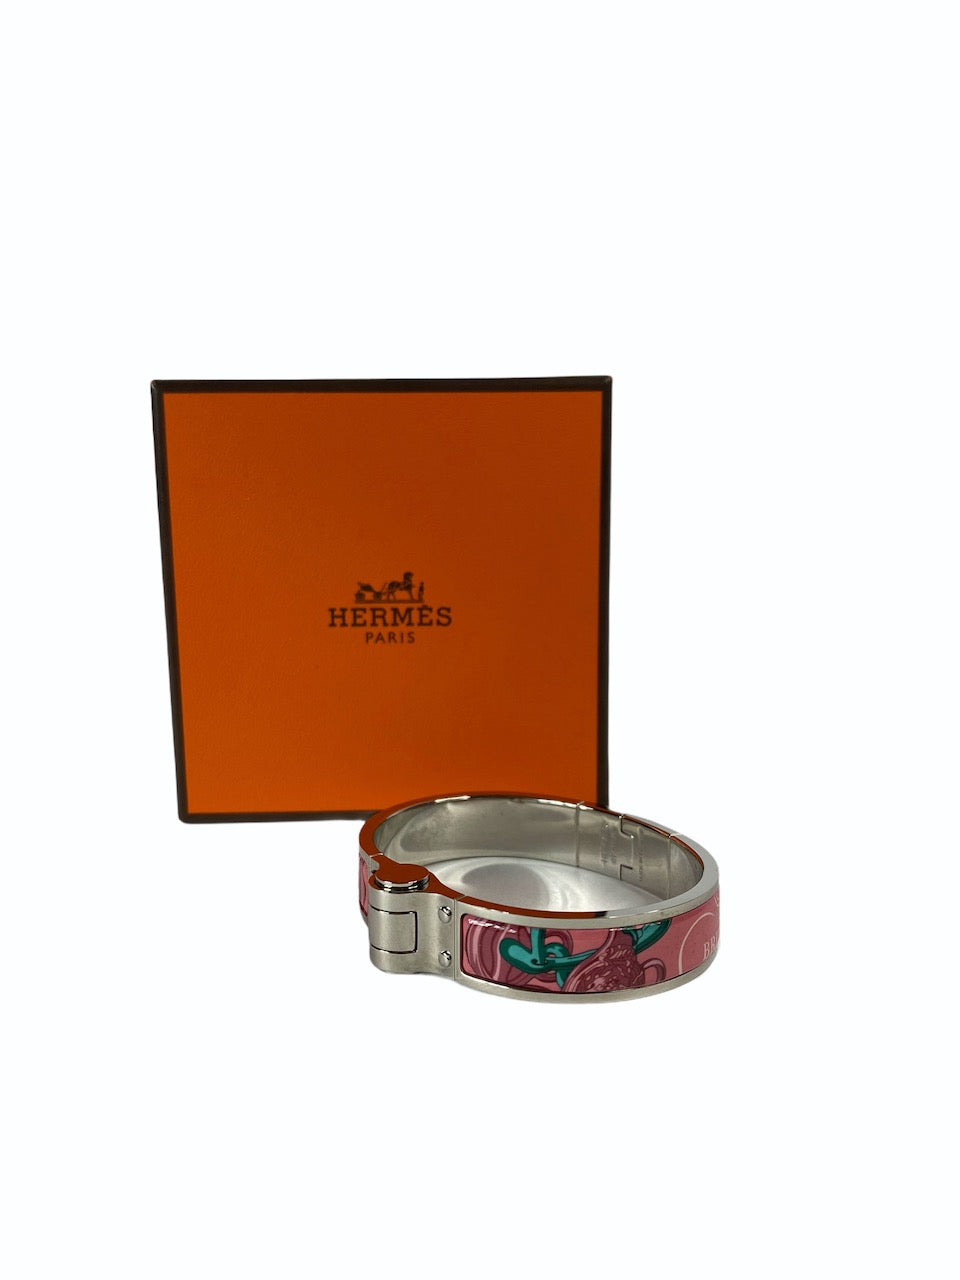 Hermes Brides de Gala Enamel Bangle - As Seen On Instagram 06/09/2020